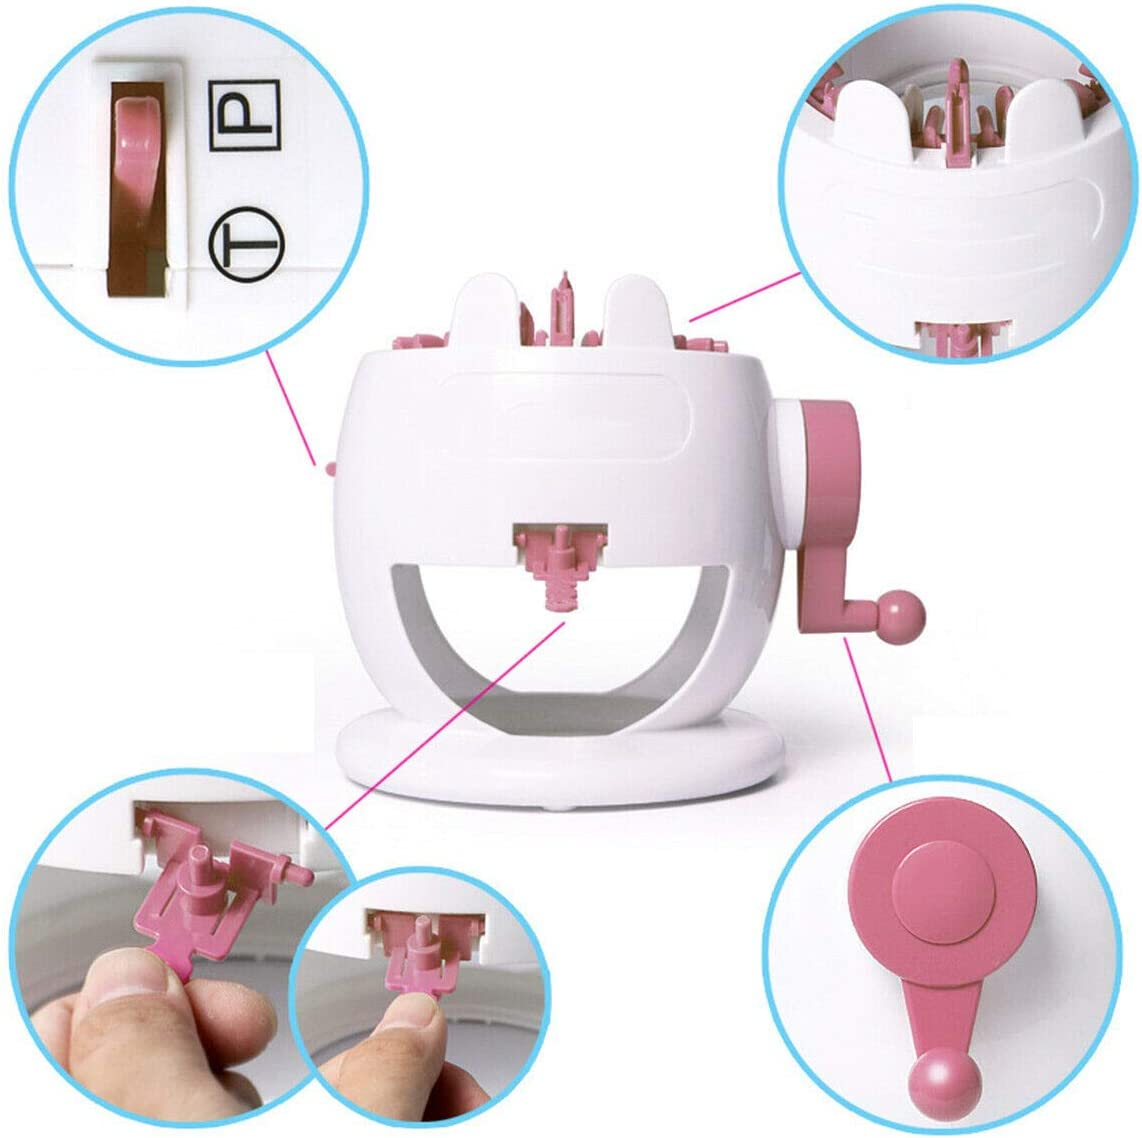 YOMENG Portable Needle Hand Knitting Machine Portable Smart Weaver Knitting Round Loom Educational Toys